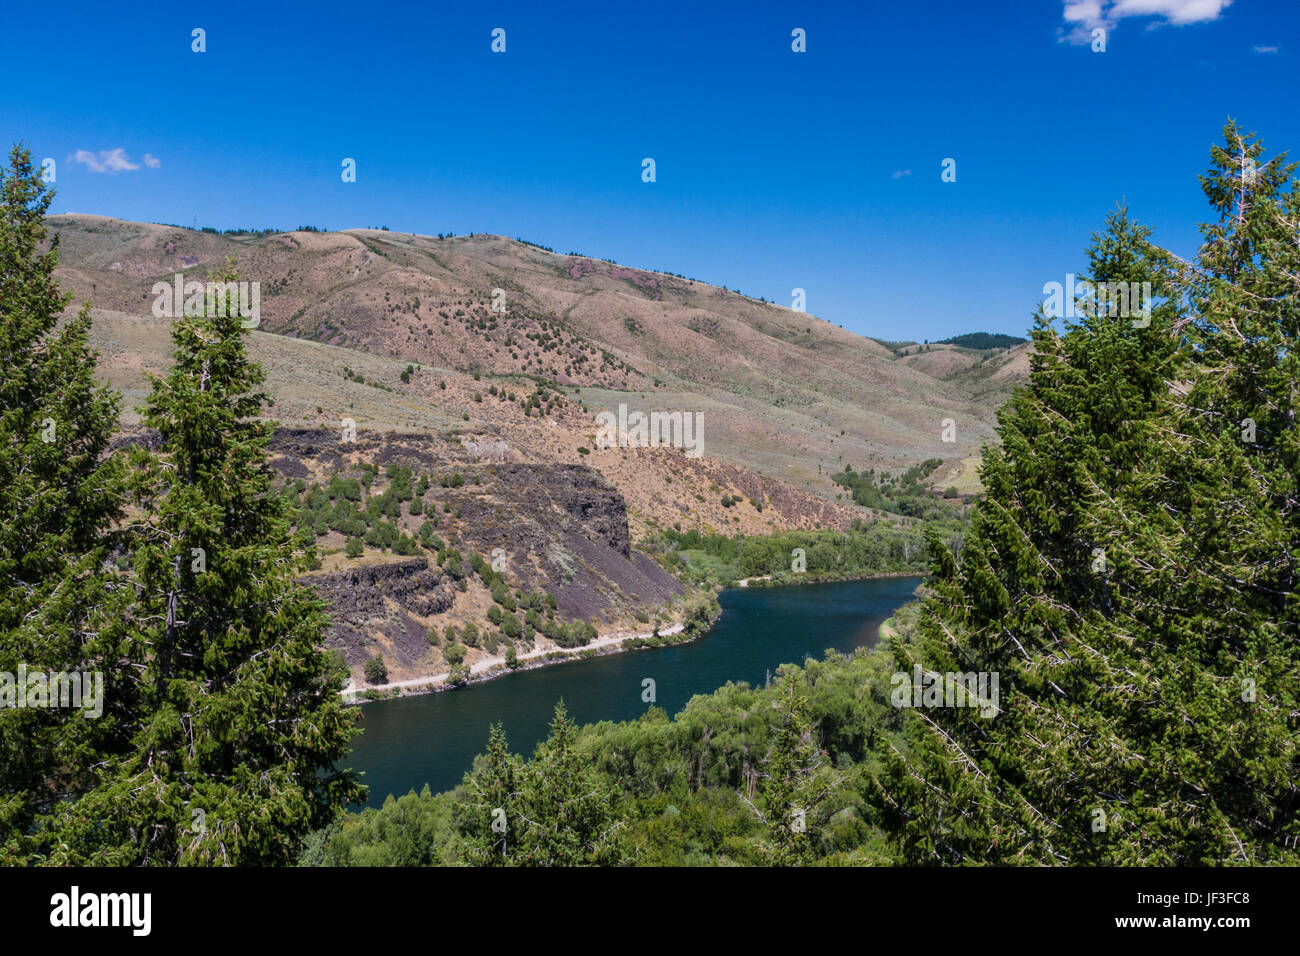 Snake River overlook in southeastern Idaho. The Snake River plays a major role in Idaho farming, because of the - Stock Image